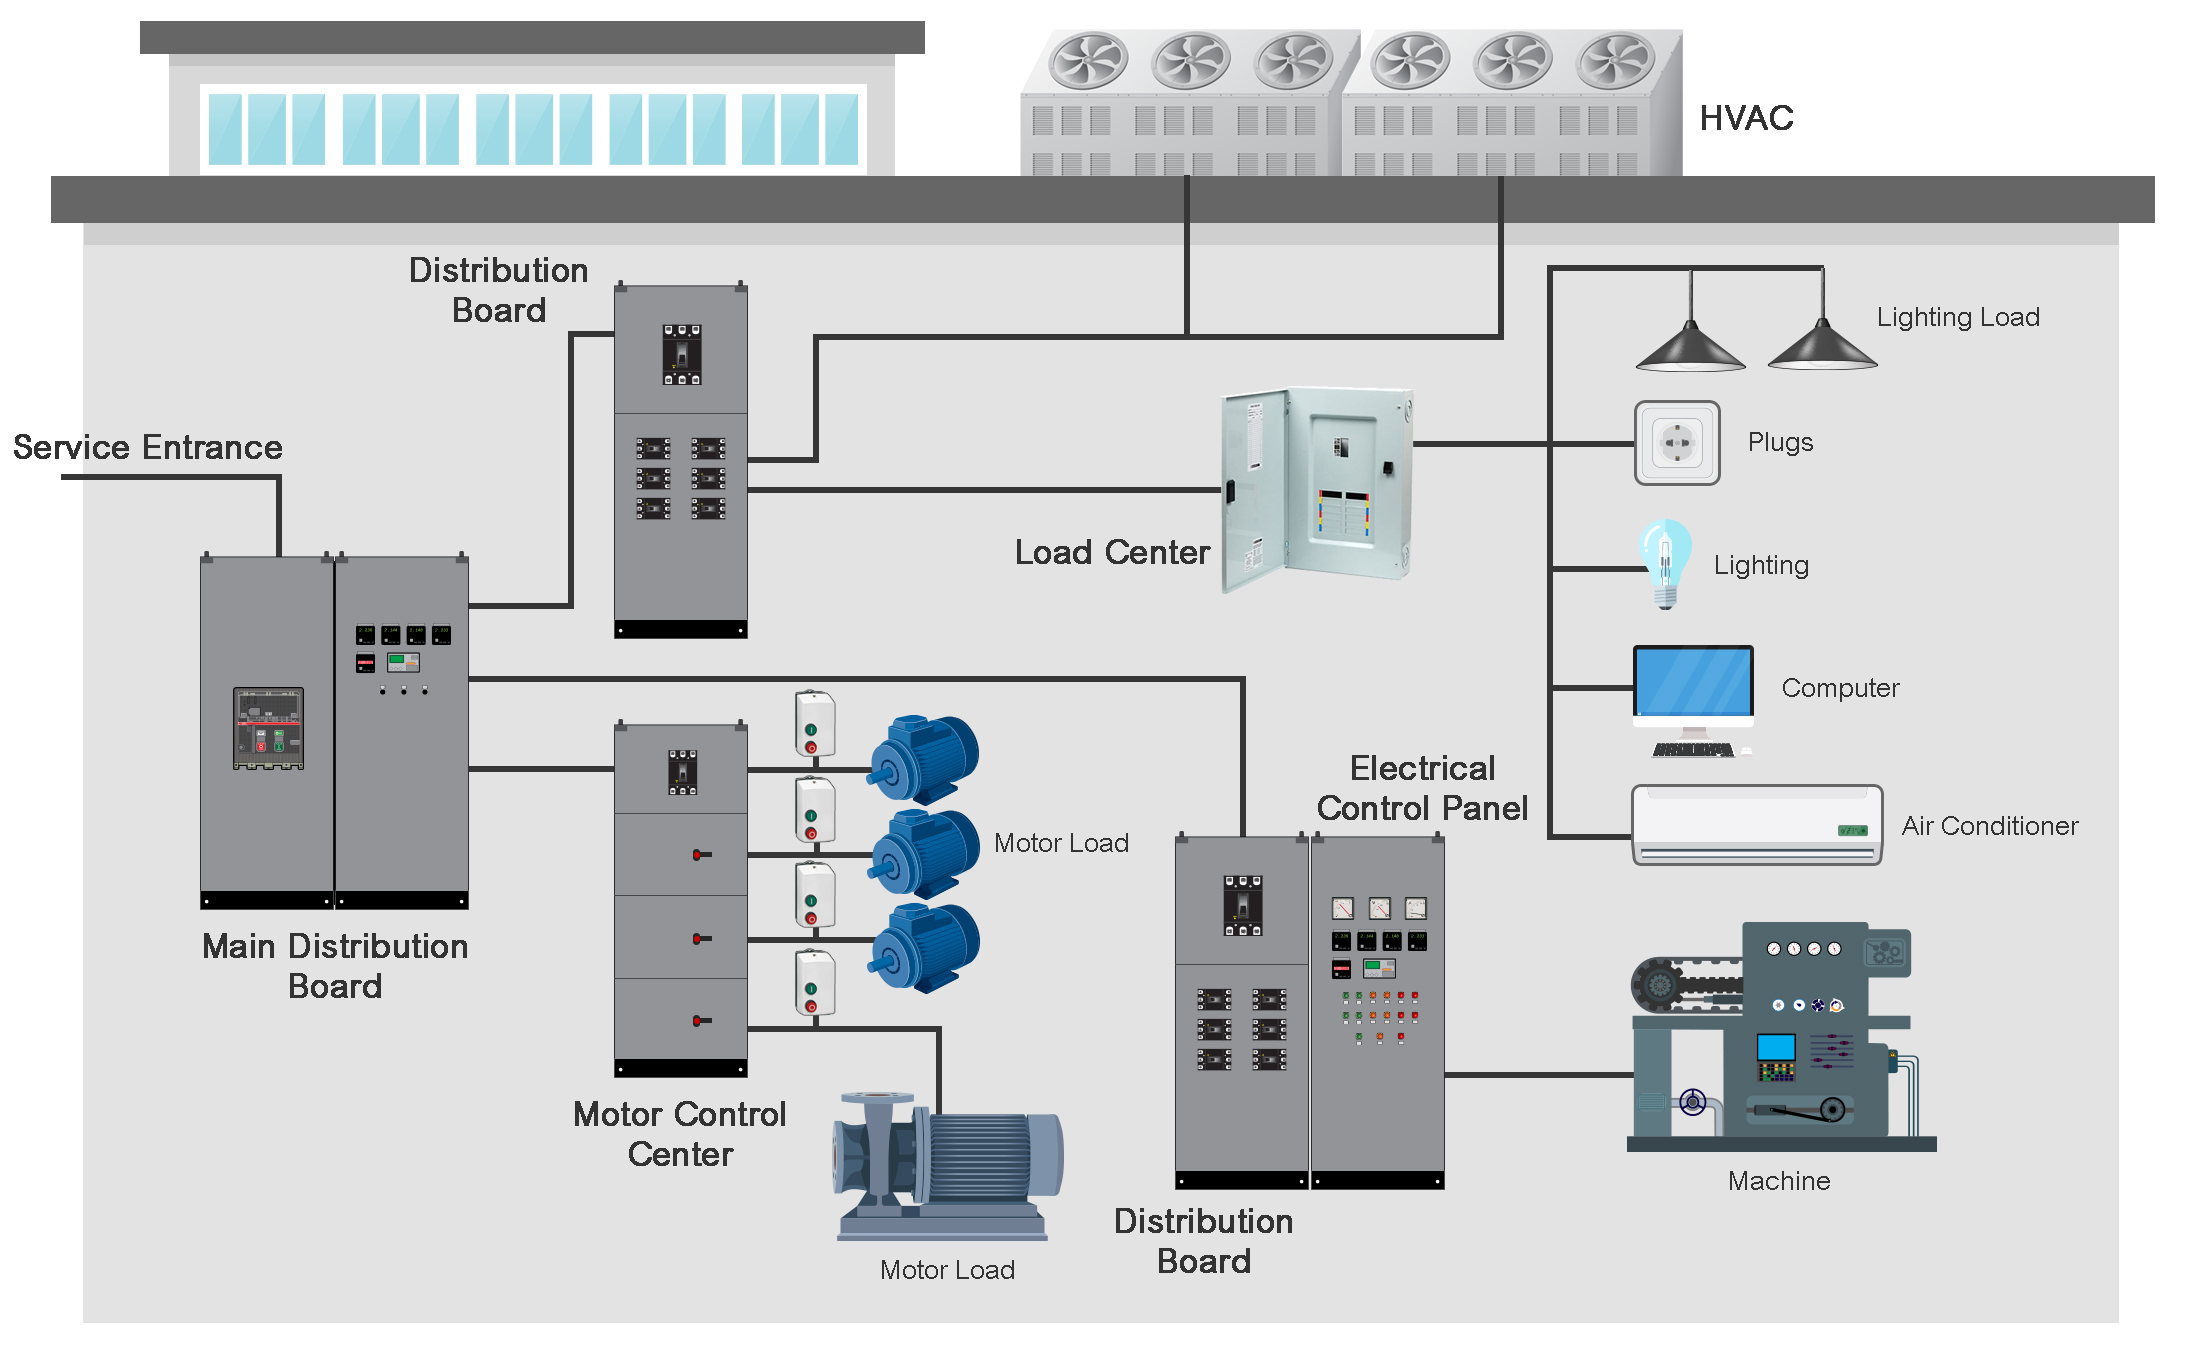 Power Distribution For Commercial Industrial Buildings Complete Guide